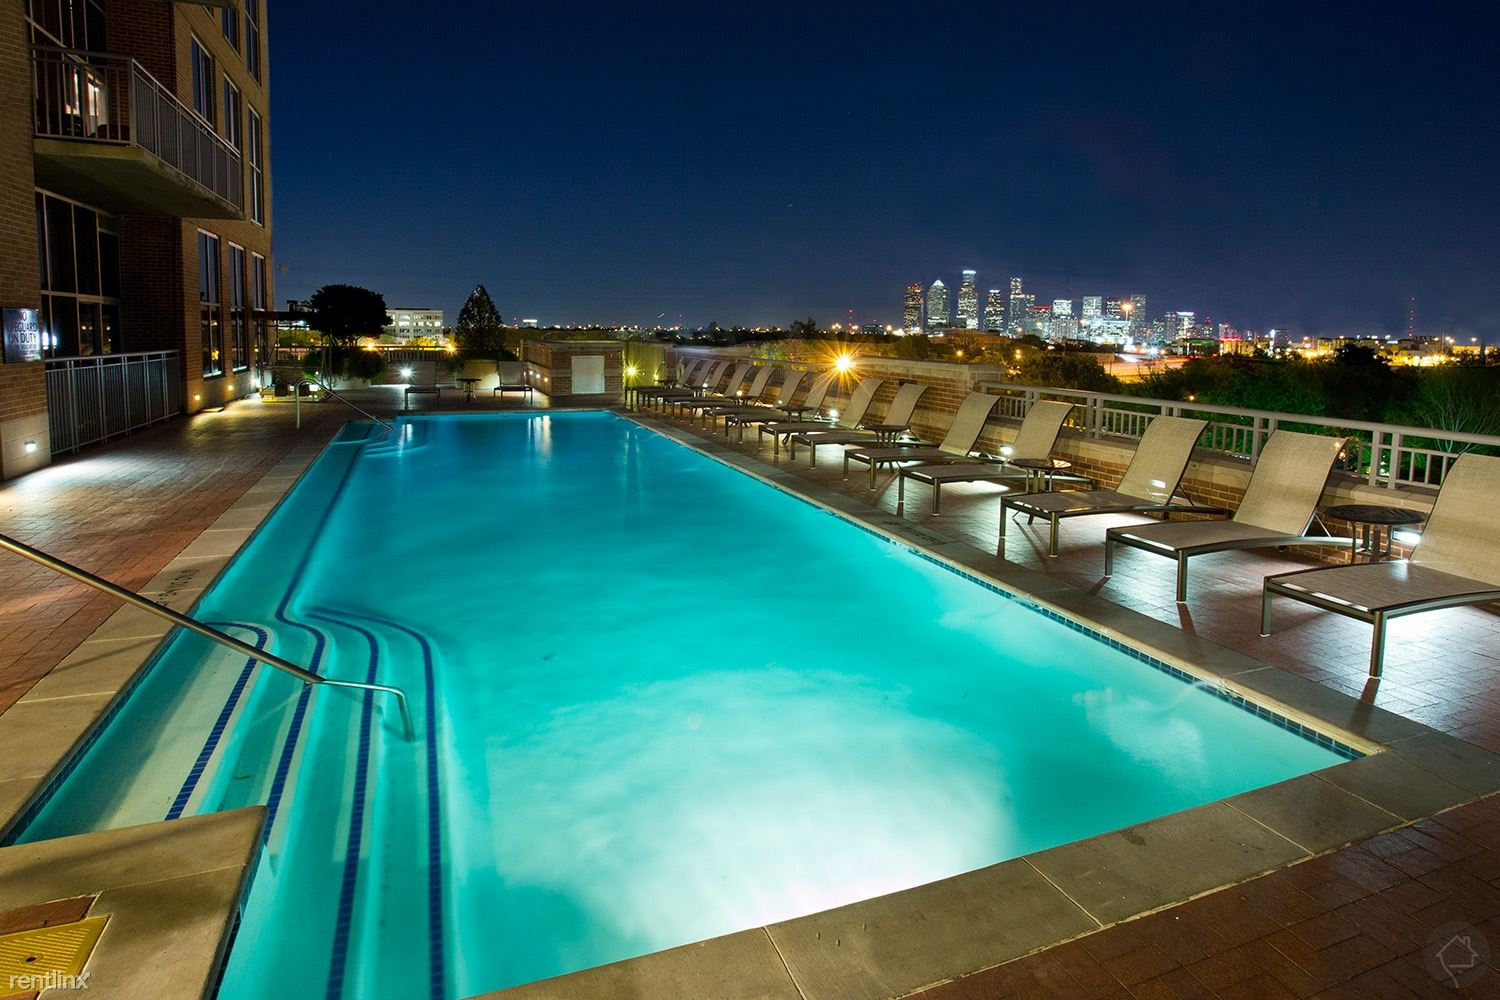 Bellaire & Medical Center 745 - 2792USD / month